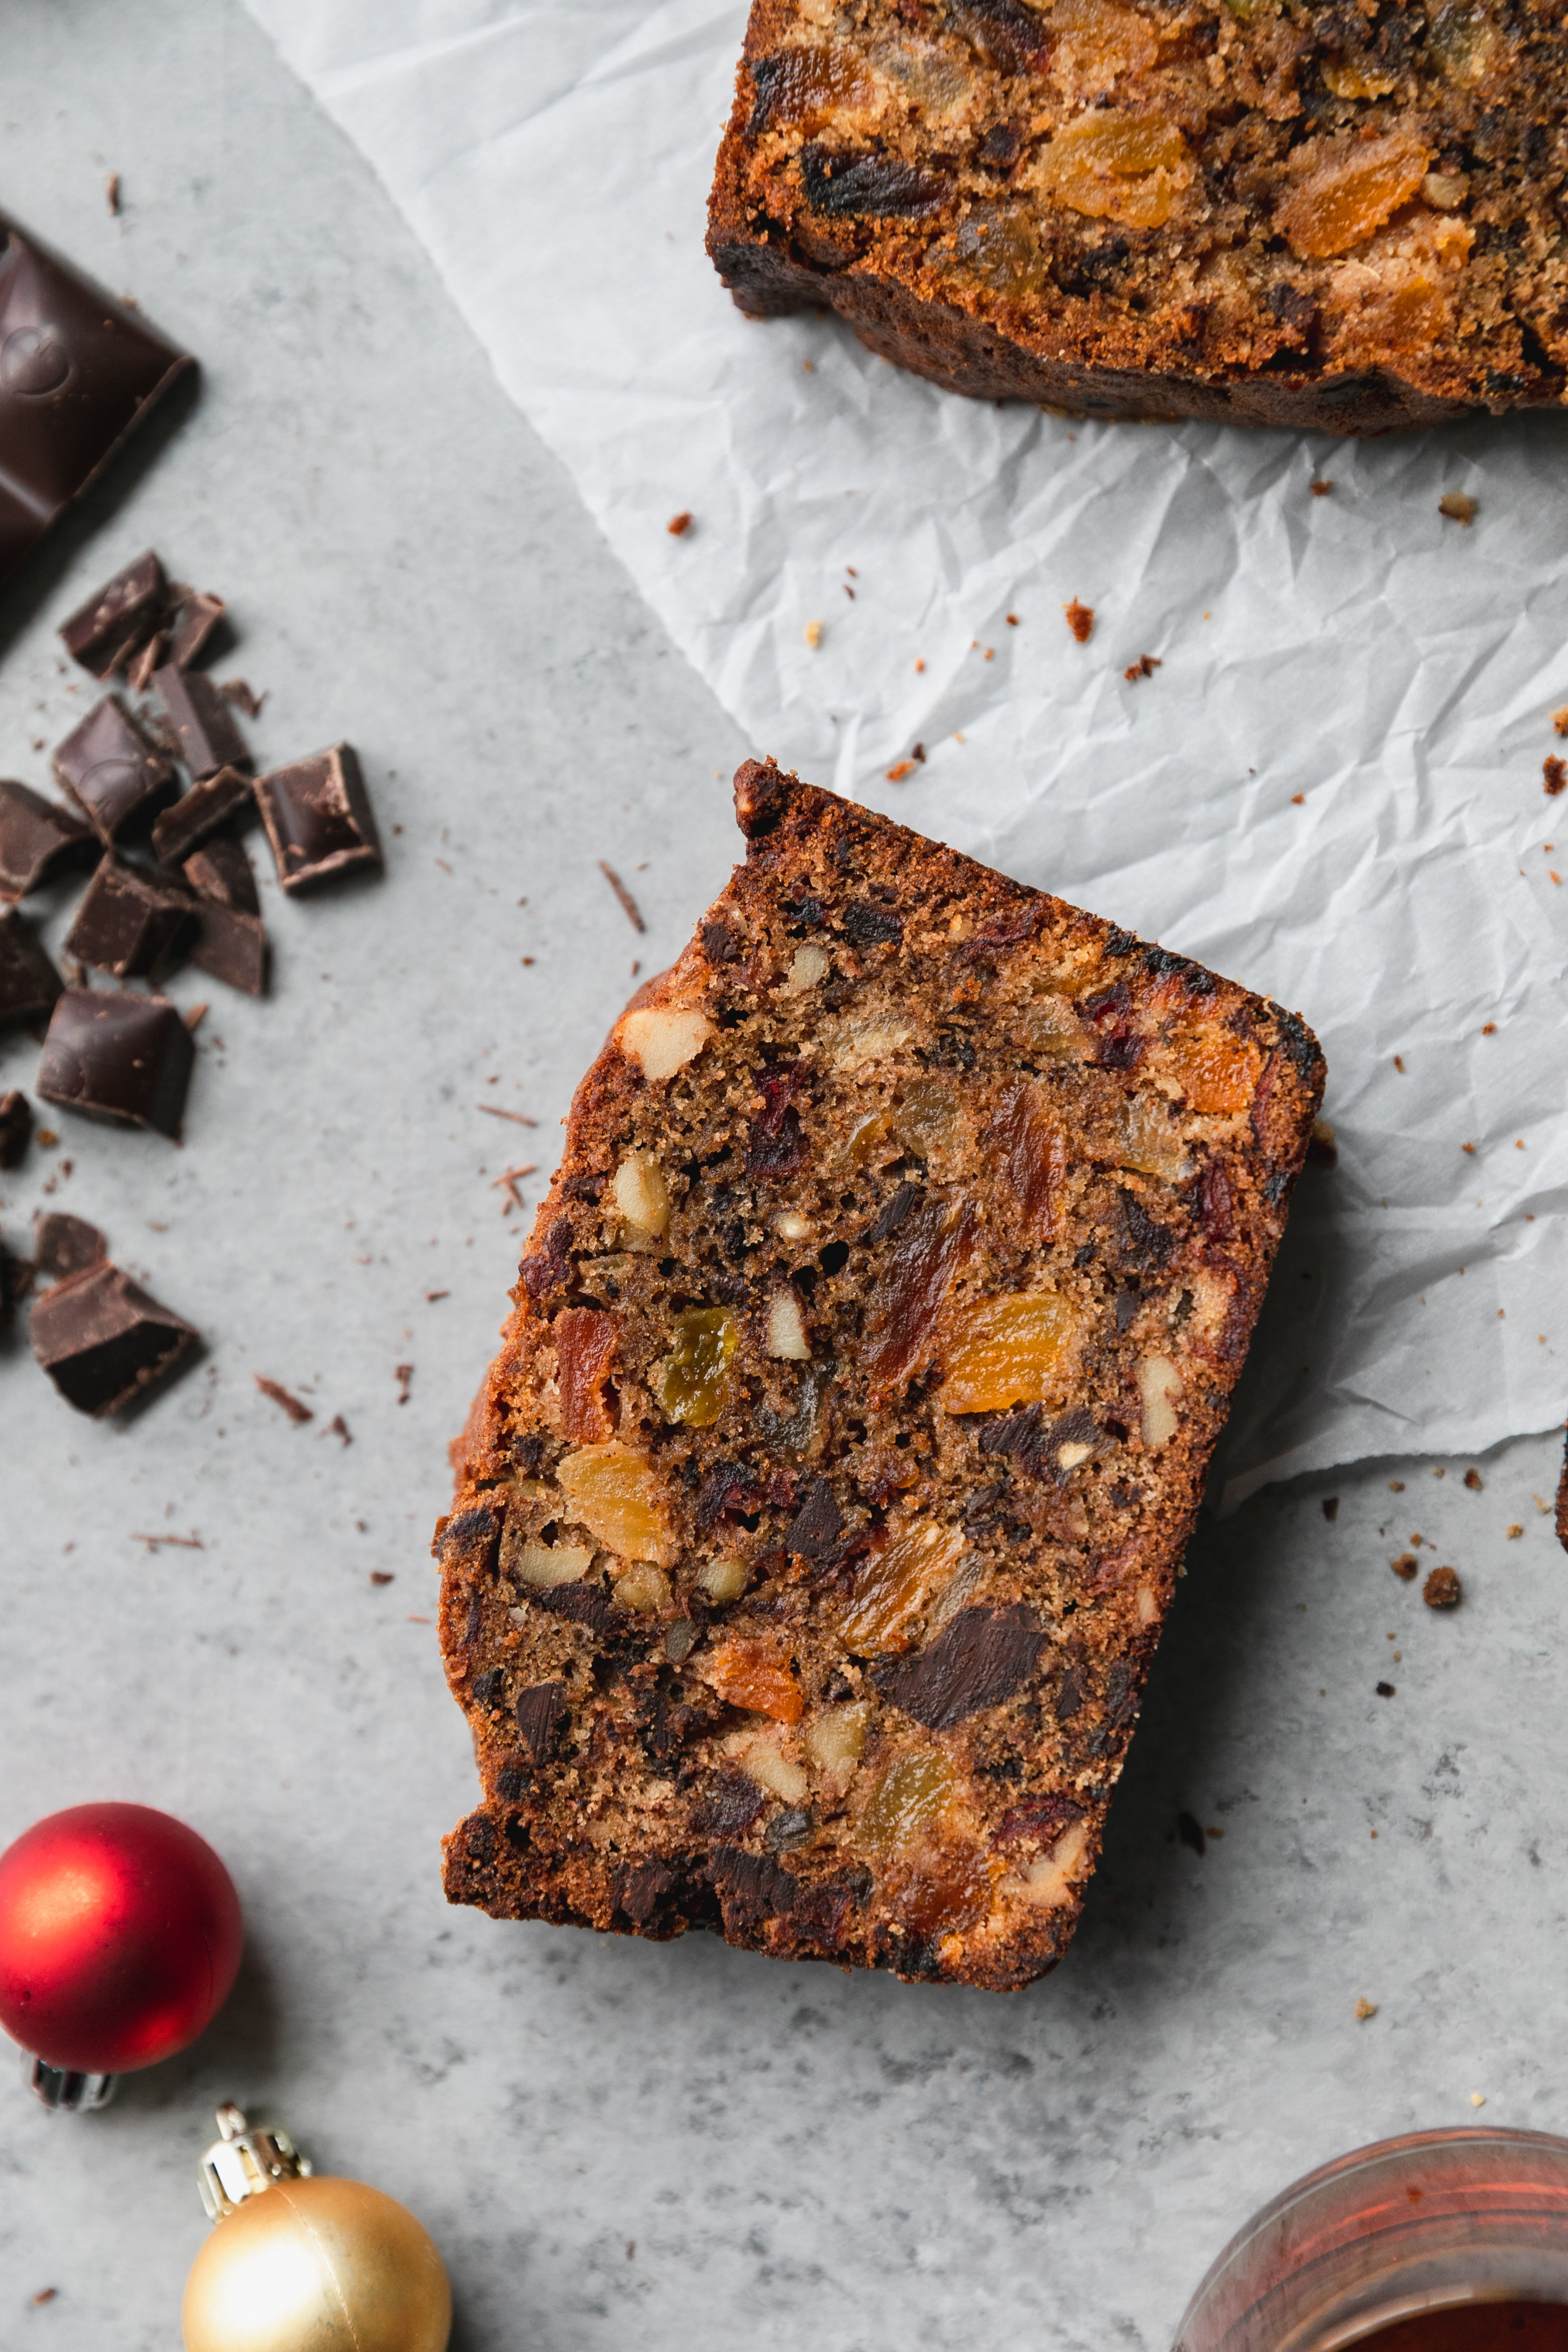 Overhead close up shot of a slice of fruitcake on a grey background with chopped dark chocolate and a red ornament scattered around